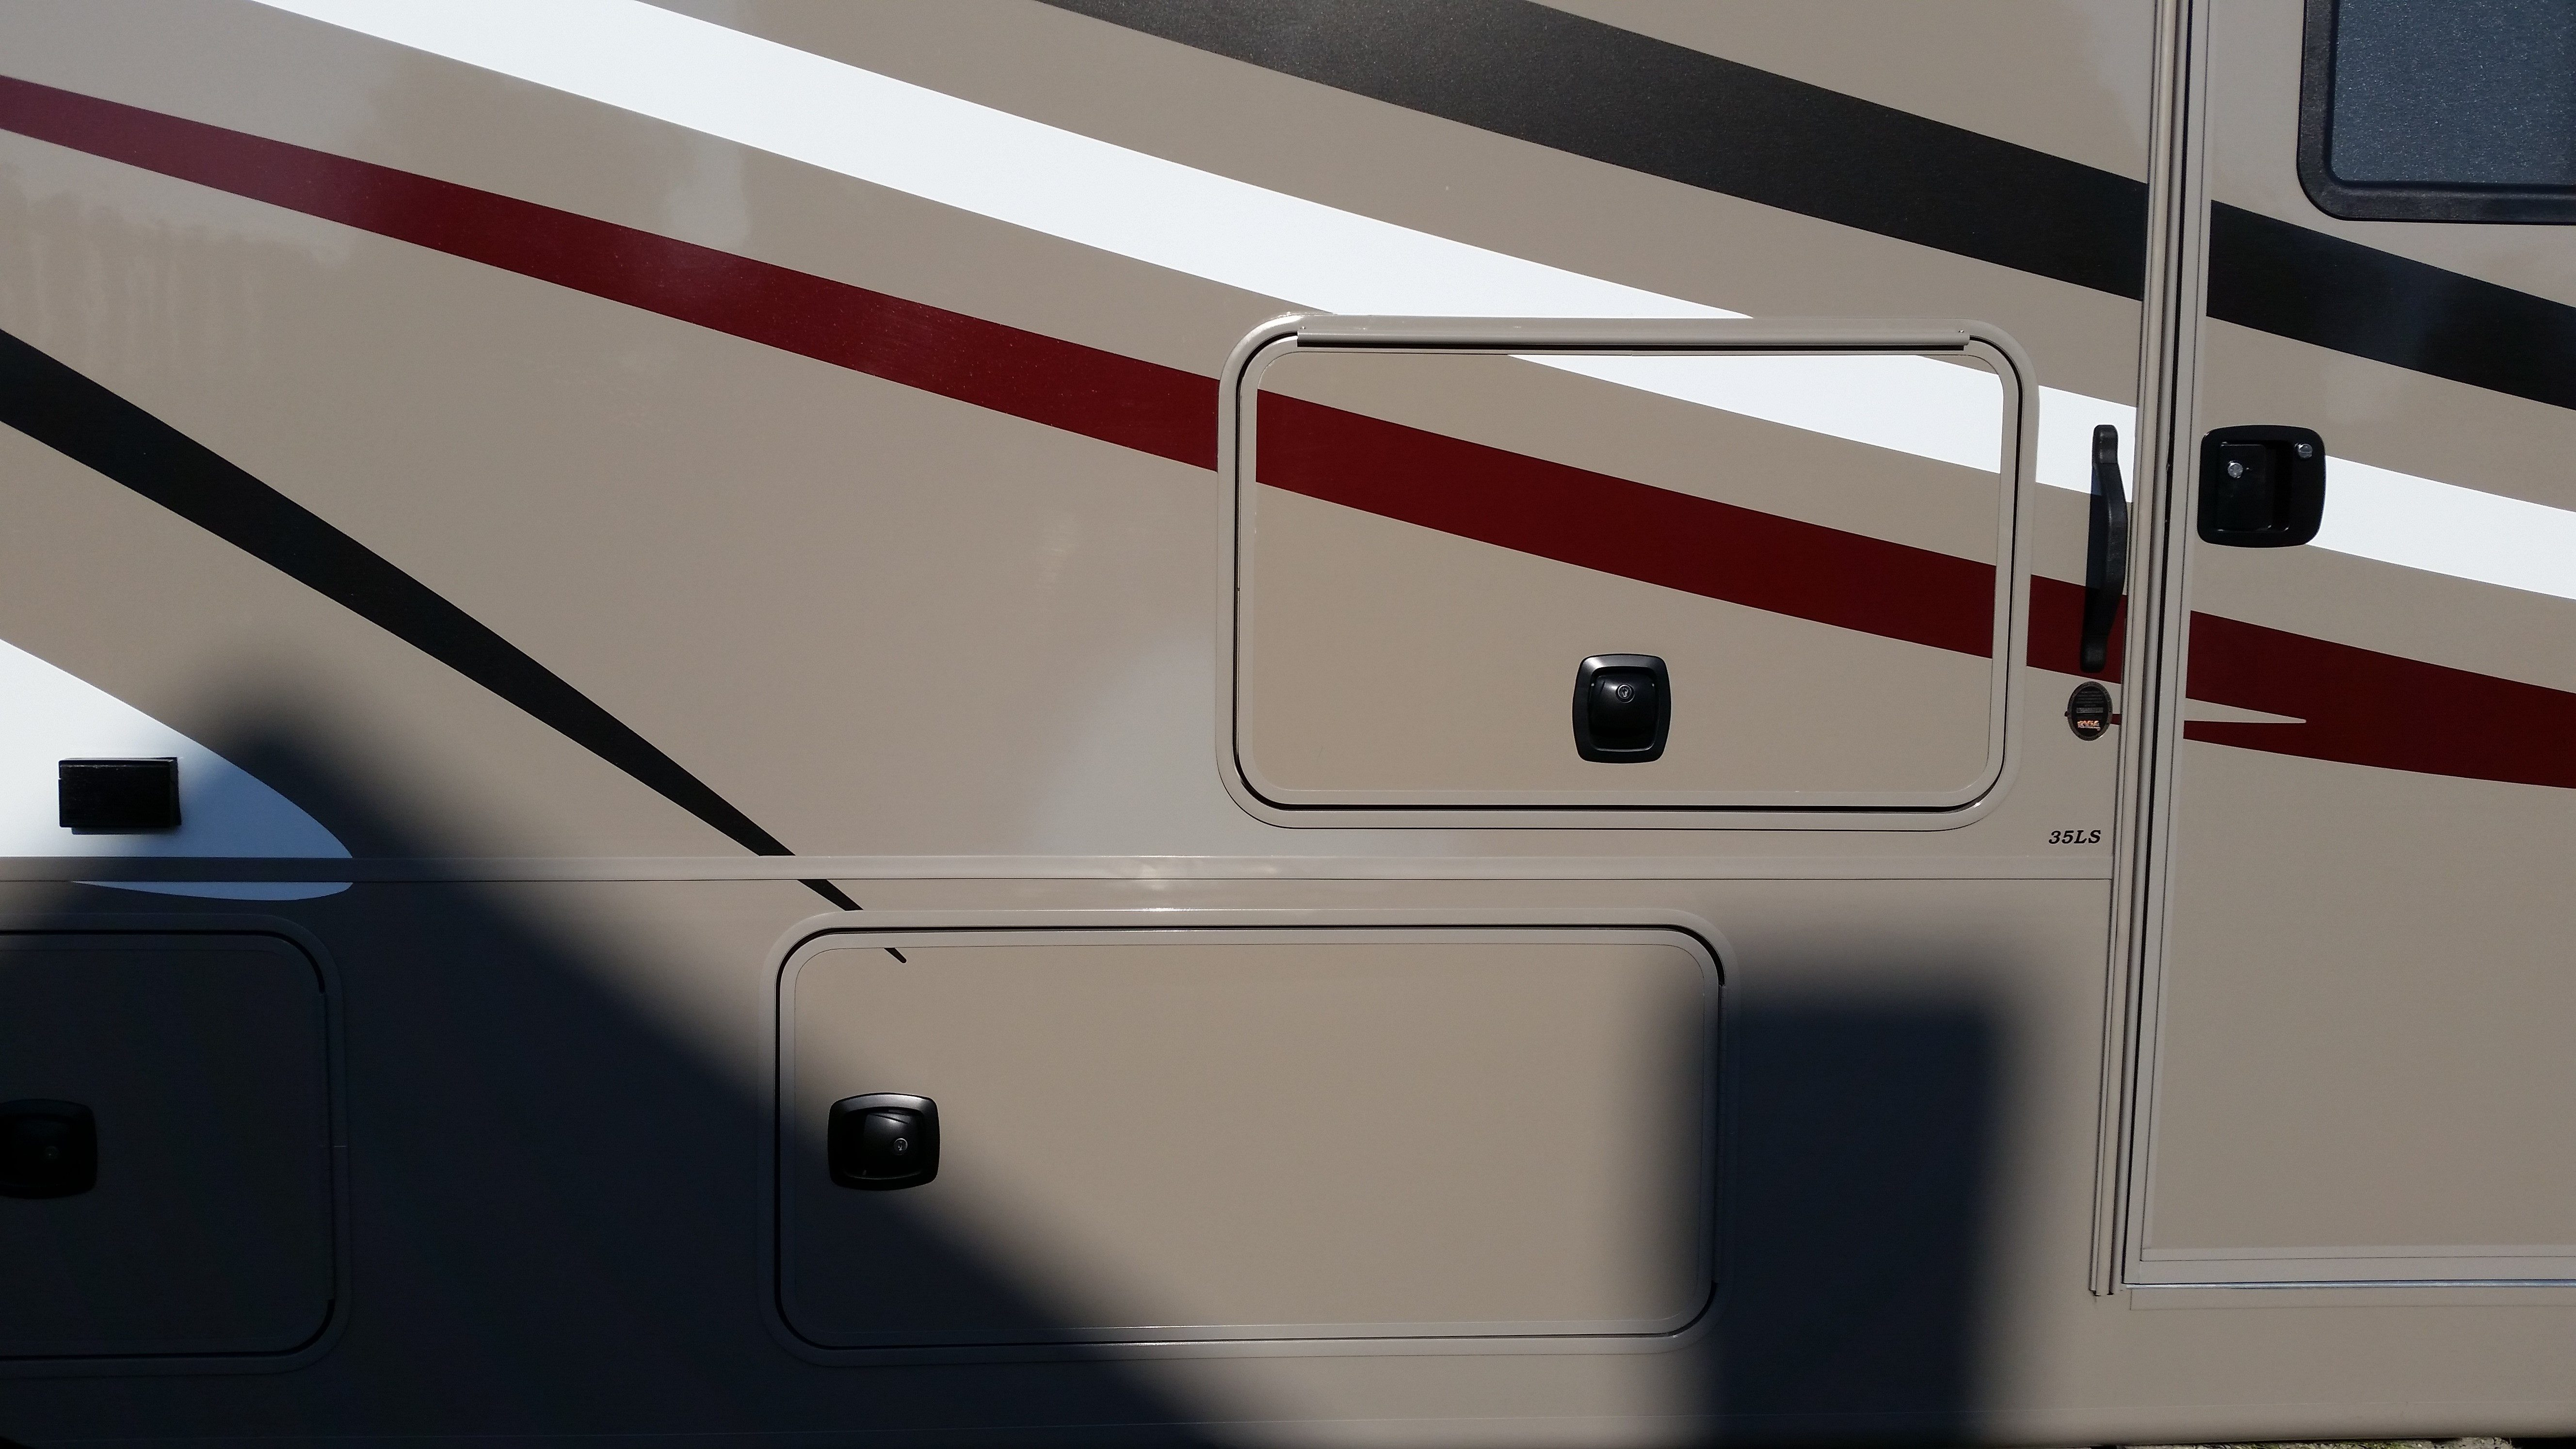 View all 6 imagesTop 57 Reviews and Complaints about Coachmen RV. Outside Shower Door For Rv. Home Design Ideas